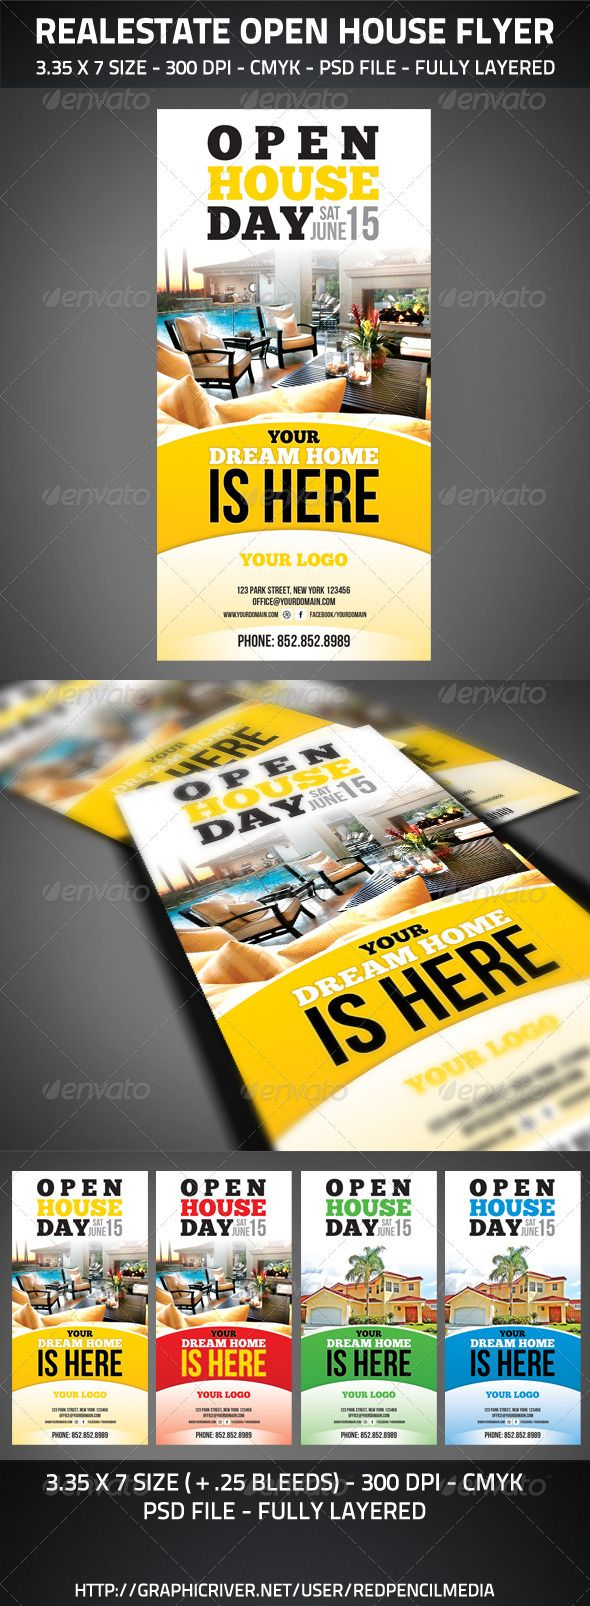 1000 images about real estate ads corporate 1000 images about real estate ads corporate brochure design real estate business and for